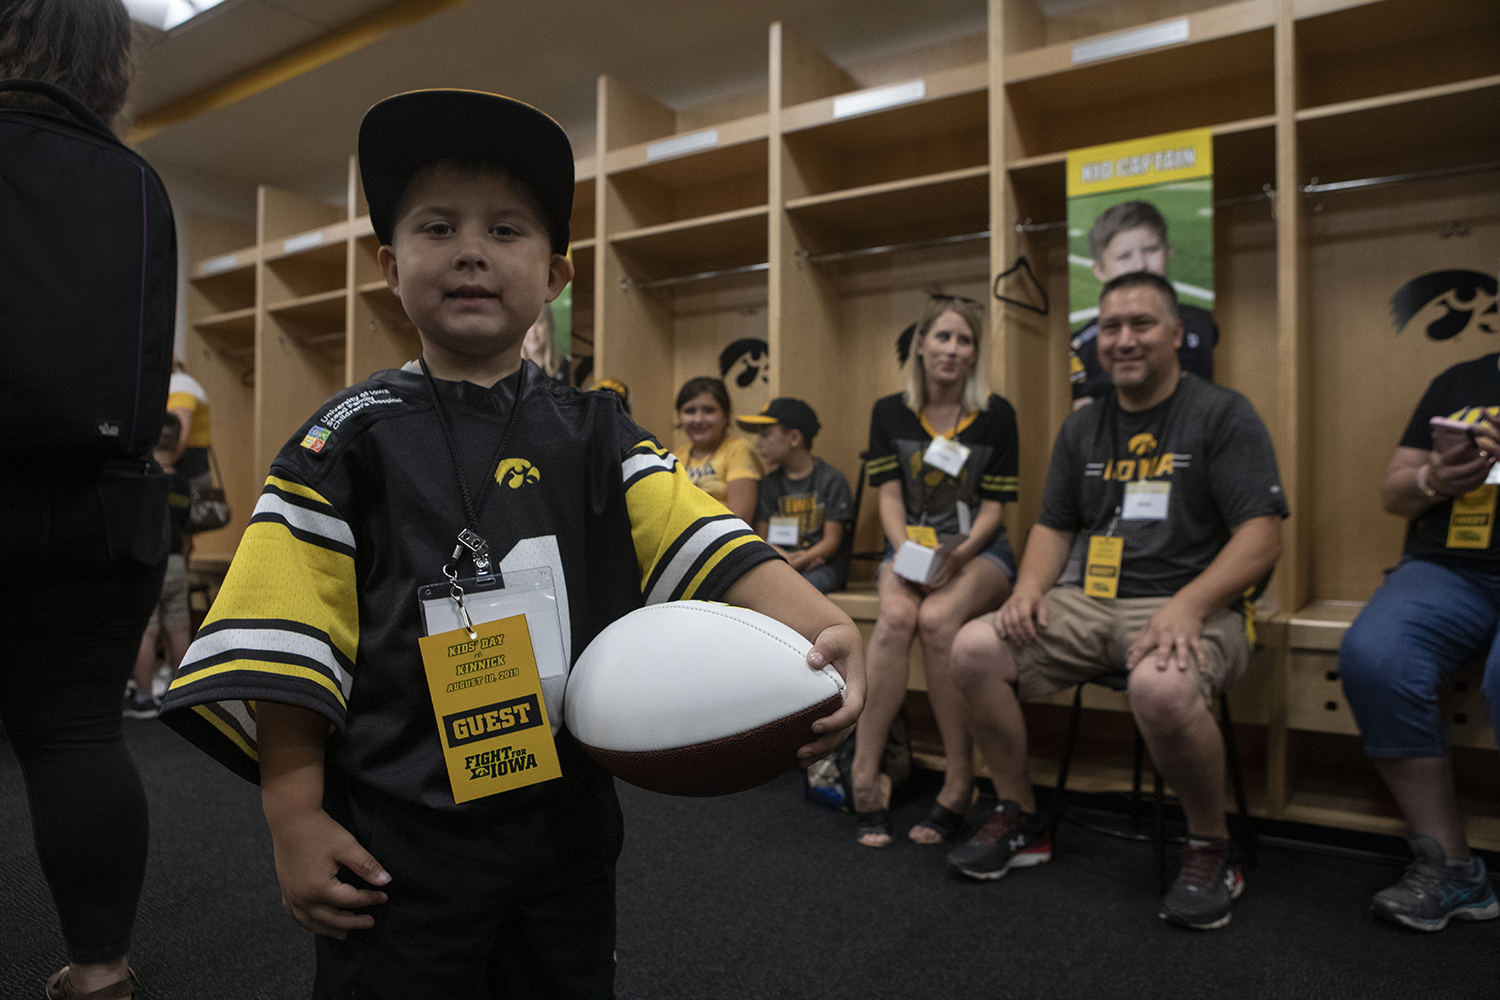 Kid Captain Jeg Weets poses for a picture while his mother and father sit behind him in the Hawkeye football locker room at Kids Day at Kinnick on Saturday, August 10, 2019. Kids Day at Kinnick is an annual event for families to experience Iowa's football stadium, while watching preseason practice and honoring this year's Kid Captains.